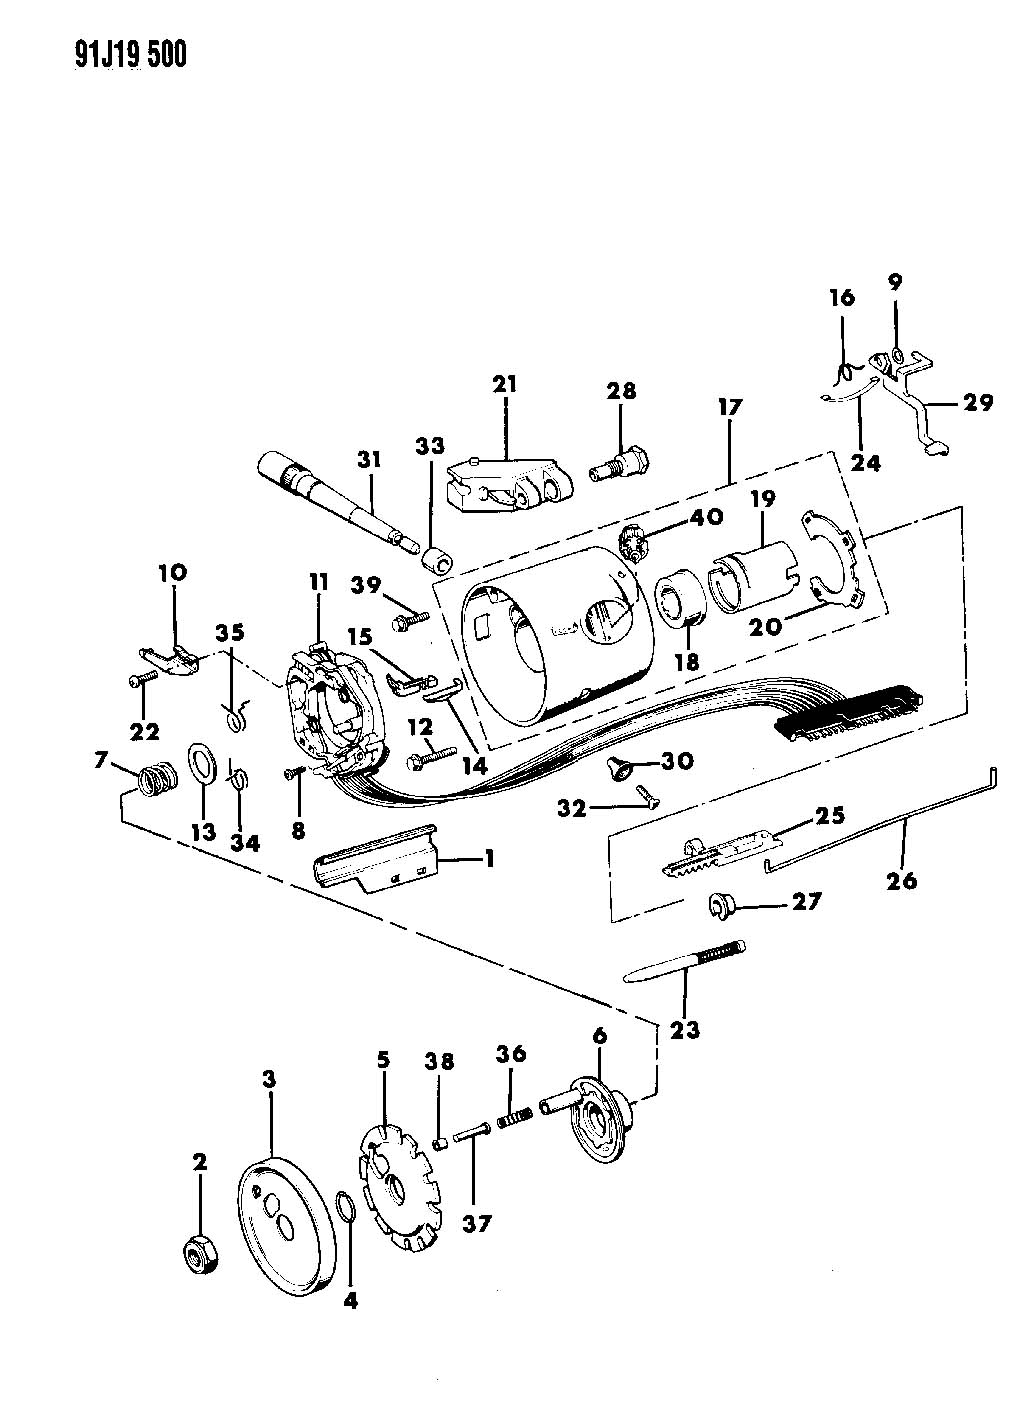 Jeep Cherokee Steering Column Wiring Diagram